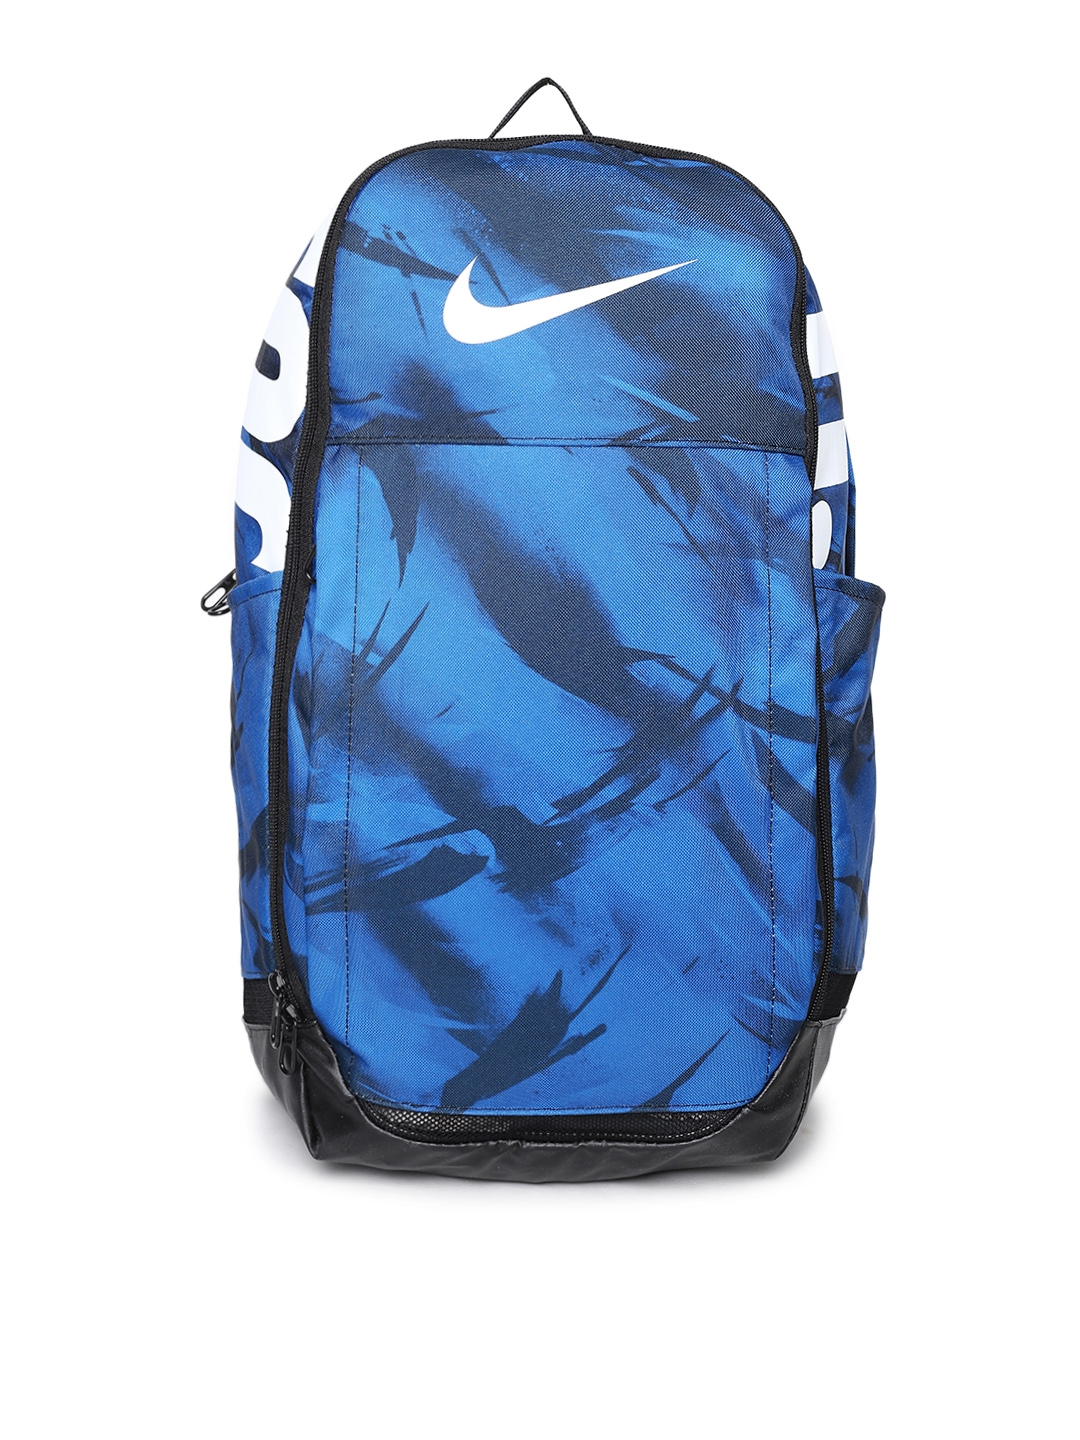 Buy Nike Unisex Blue   Black Brand Logo Backpack - Backpacks for ... 284bc7a751